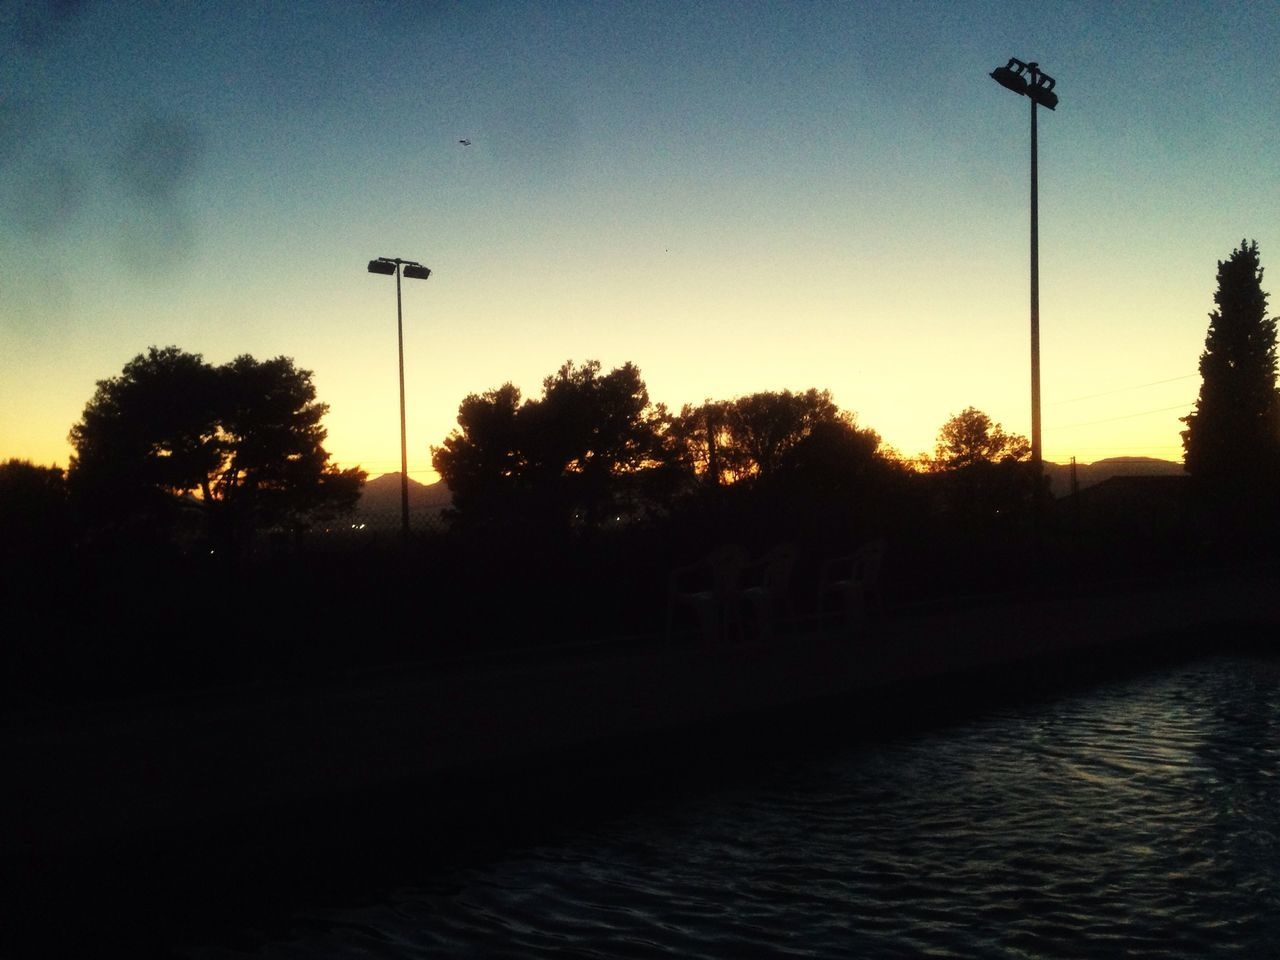 Hanging Out Relaxing Pool Water Reflections Sky_collection Silhouette Lights Headlight Enjoying Life Hanging Out